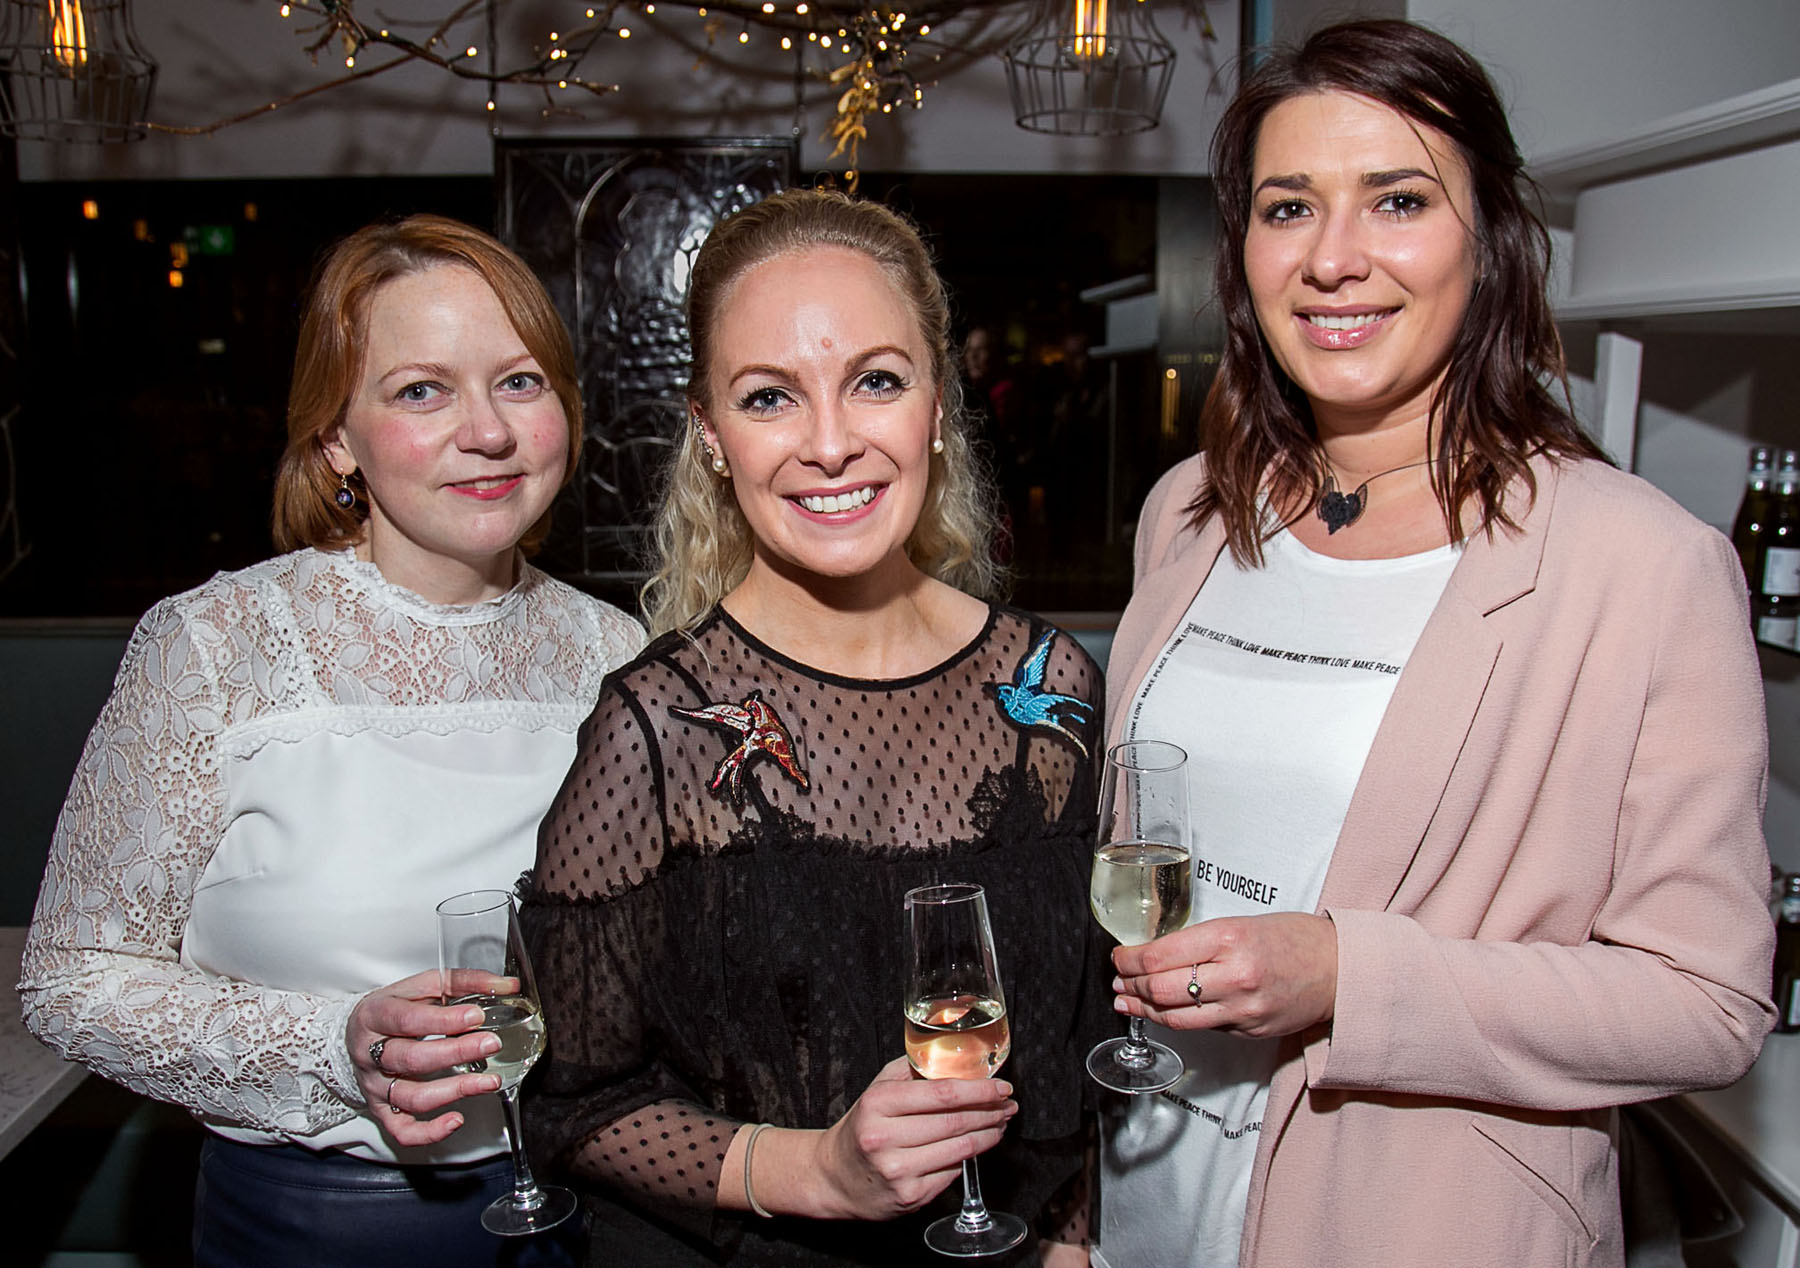 Claire O'Connell, Clarenbridge; Ruth Kemple, Knocknacarra ; Magdalena Przybylowska, Galway City Centre.